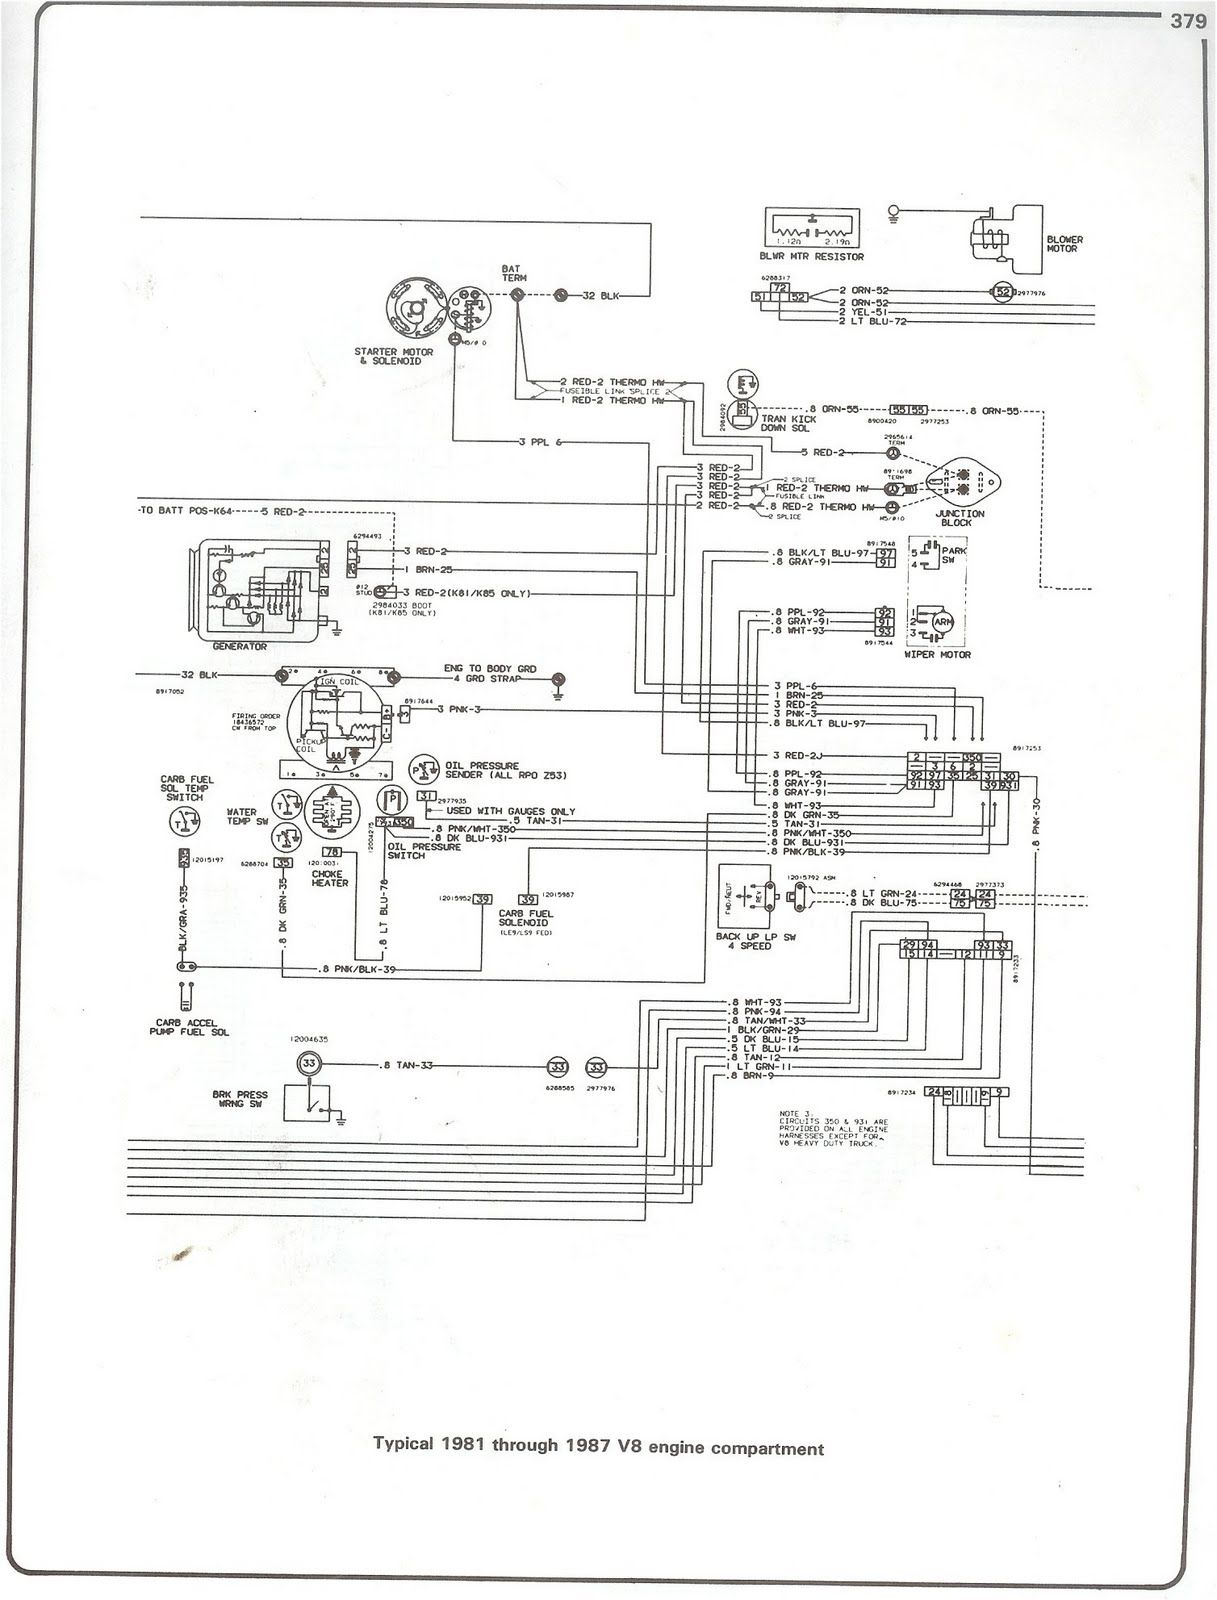 1981 corvette engine compartment diagram universal wiring 1985 k10 wiring diagram wiring